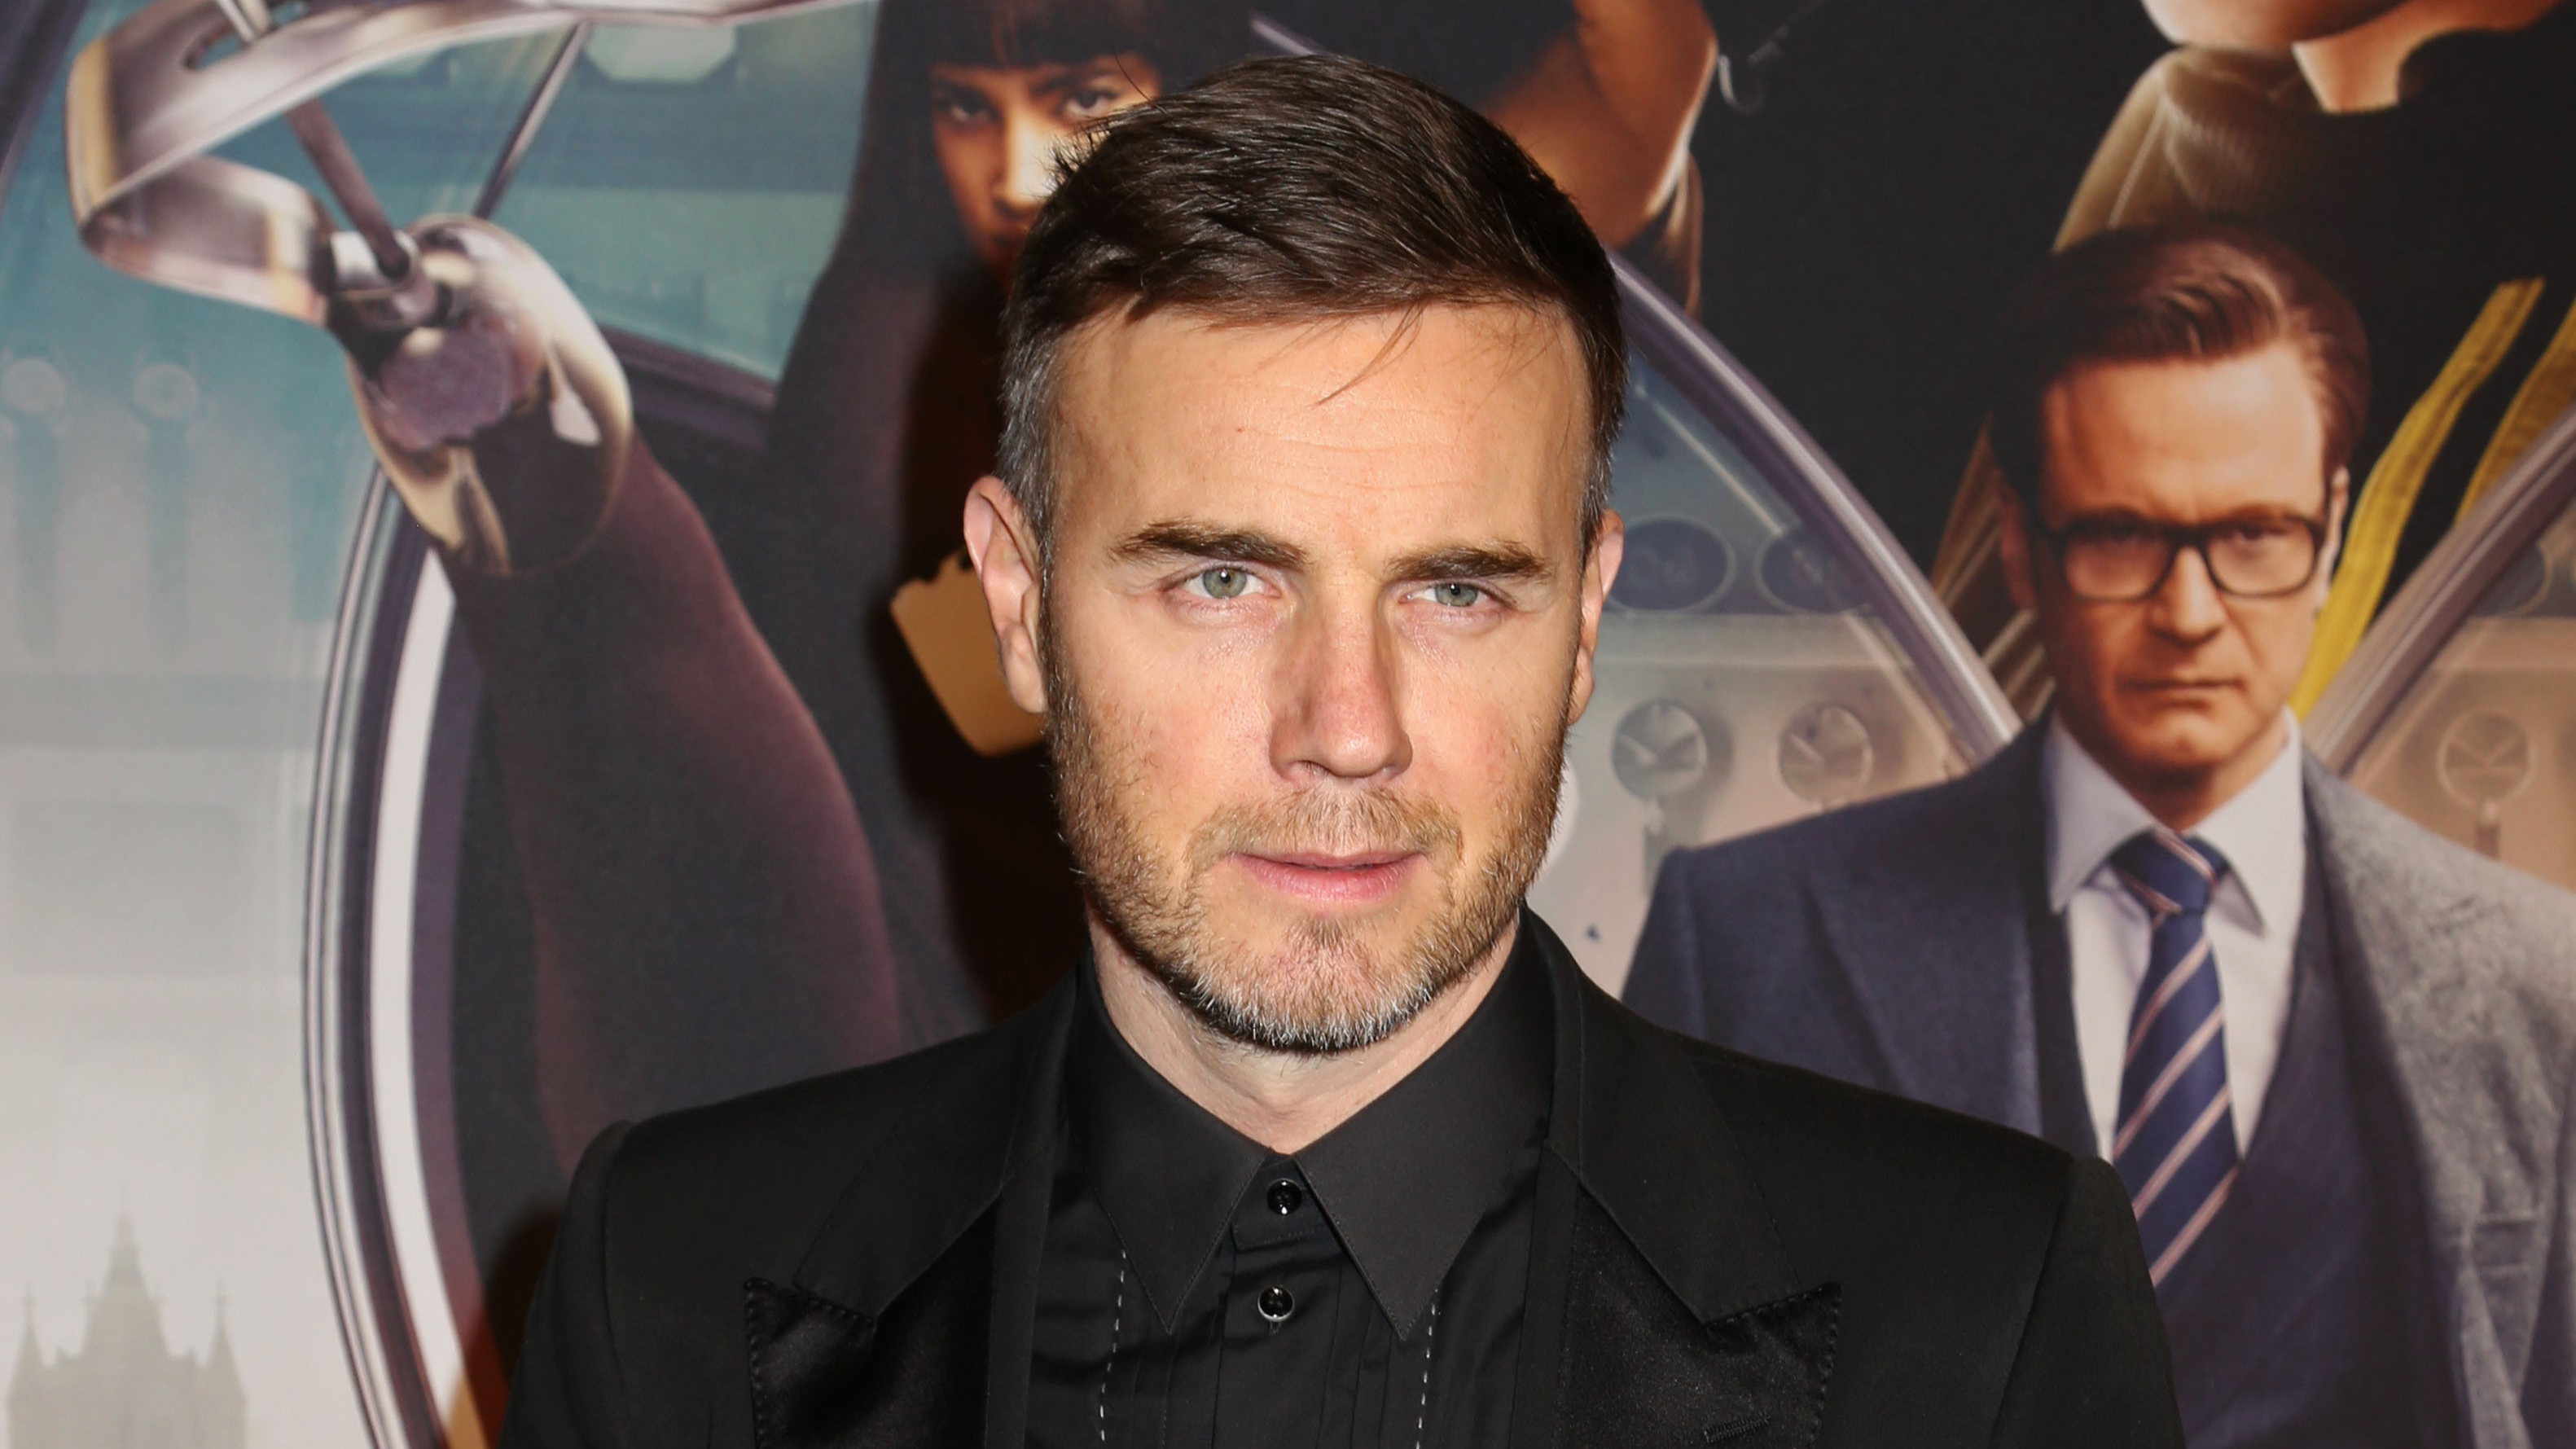 Gary Barlow Bravely Opens Up About 'Mental Breakdown' After Stillbirth